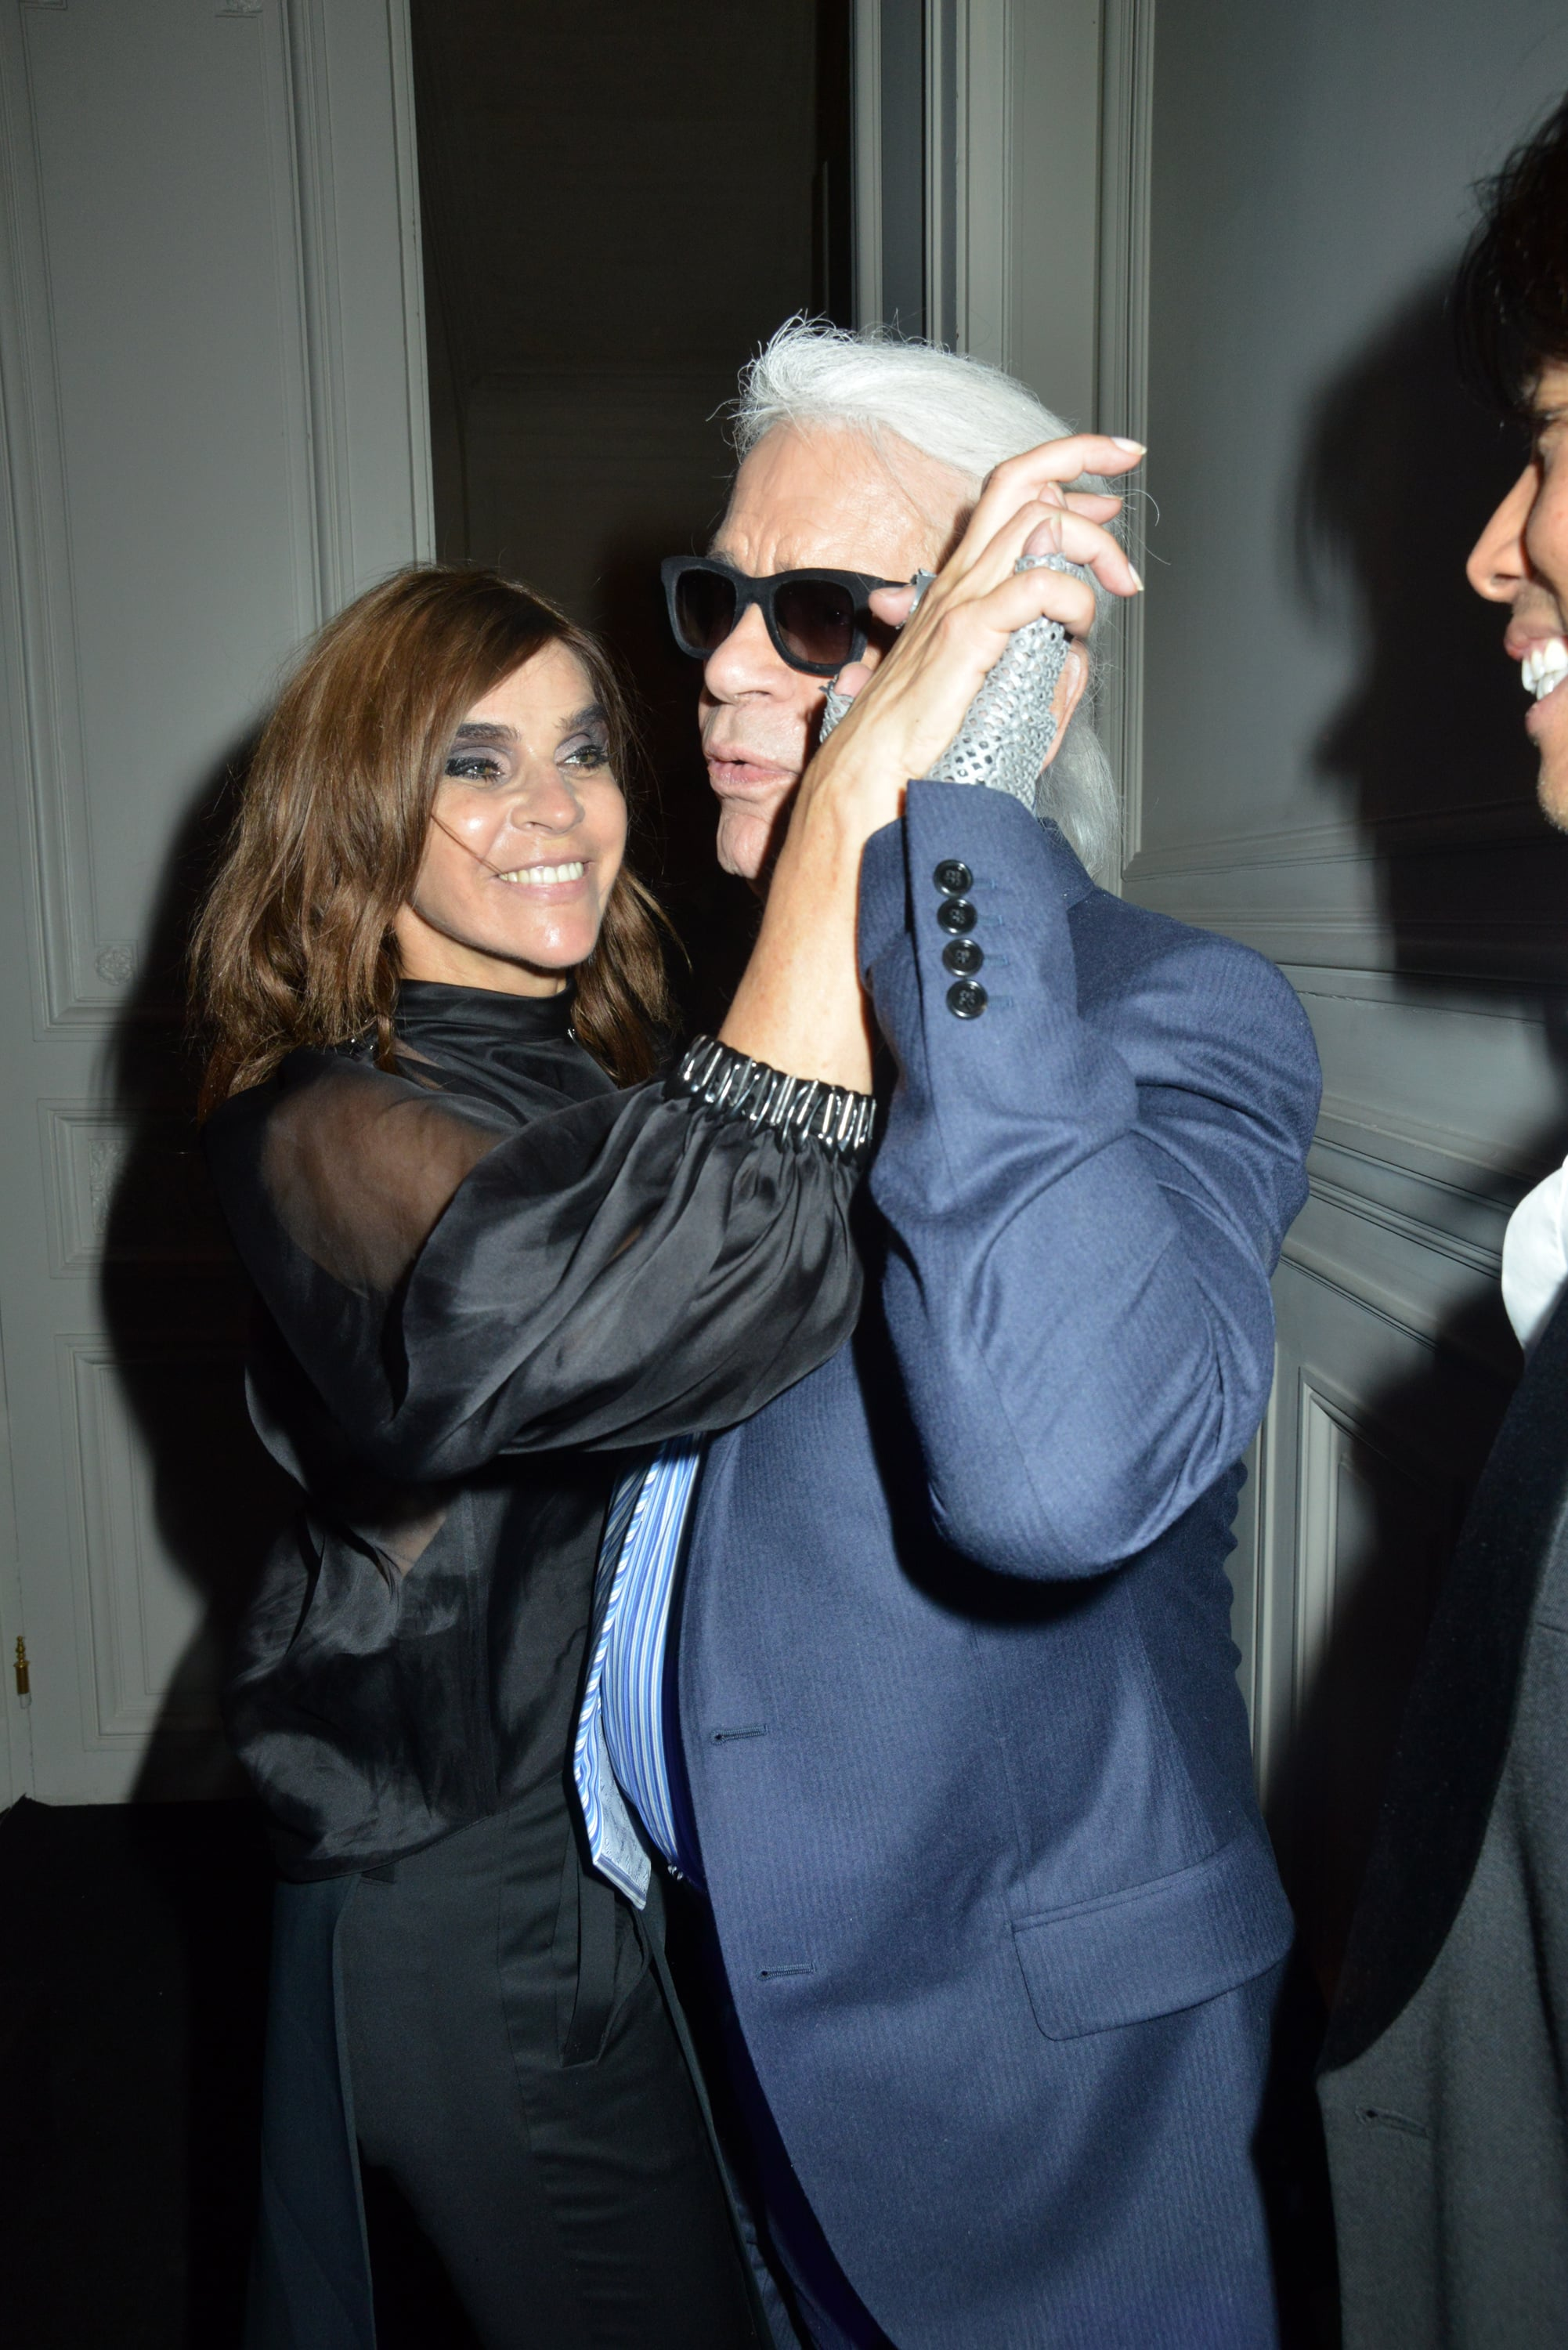 Carine and Karl Lagerfeld tangoed, showing off their lighter sides, at the MAC party.